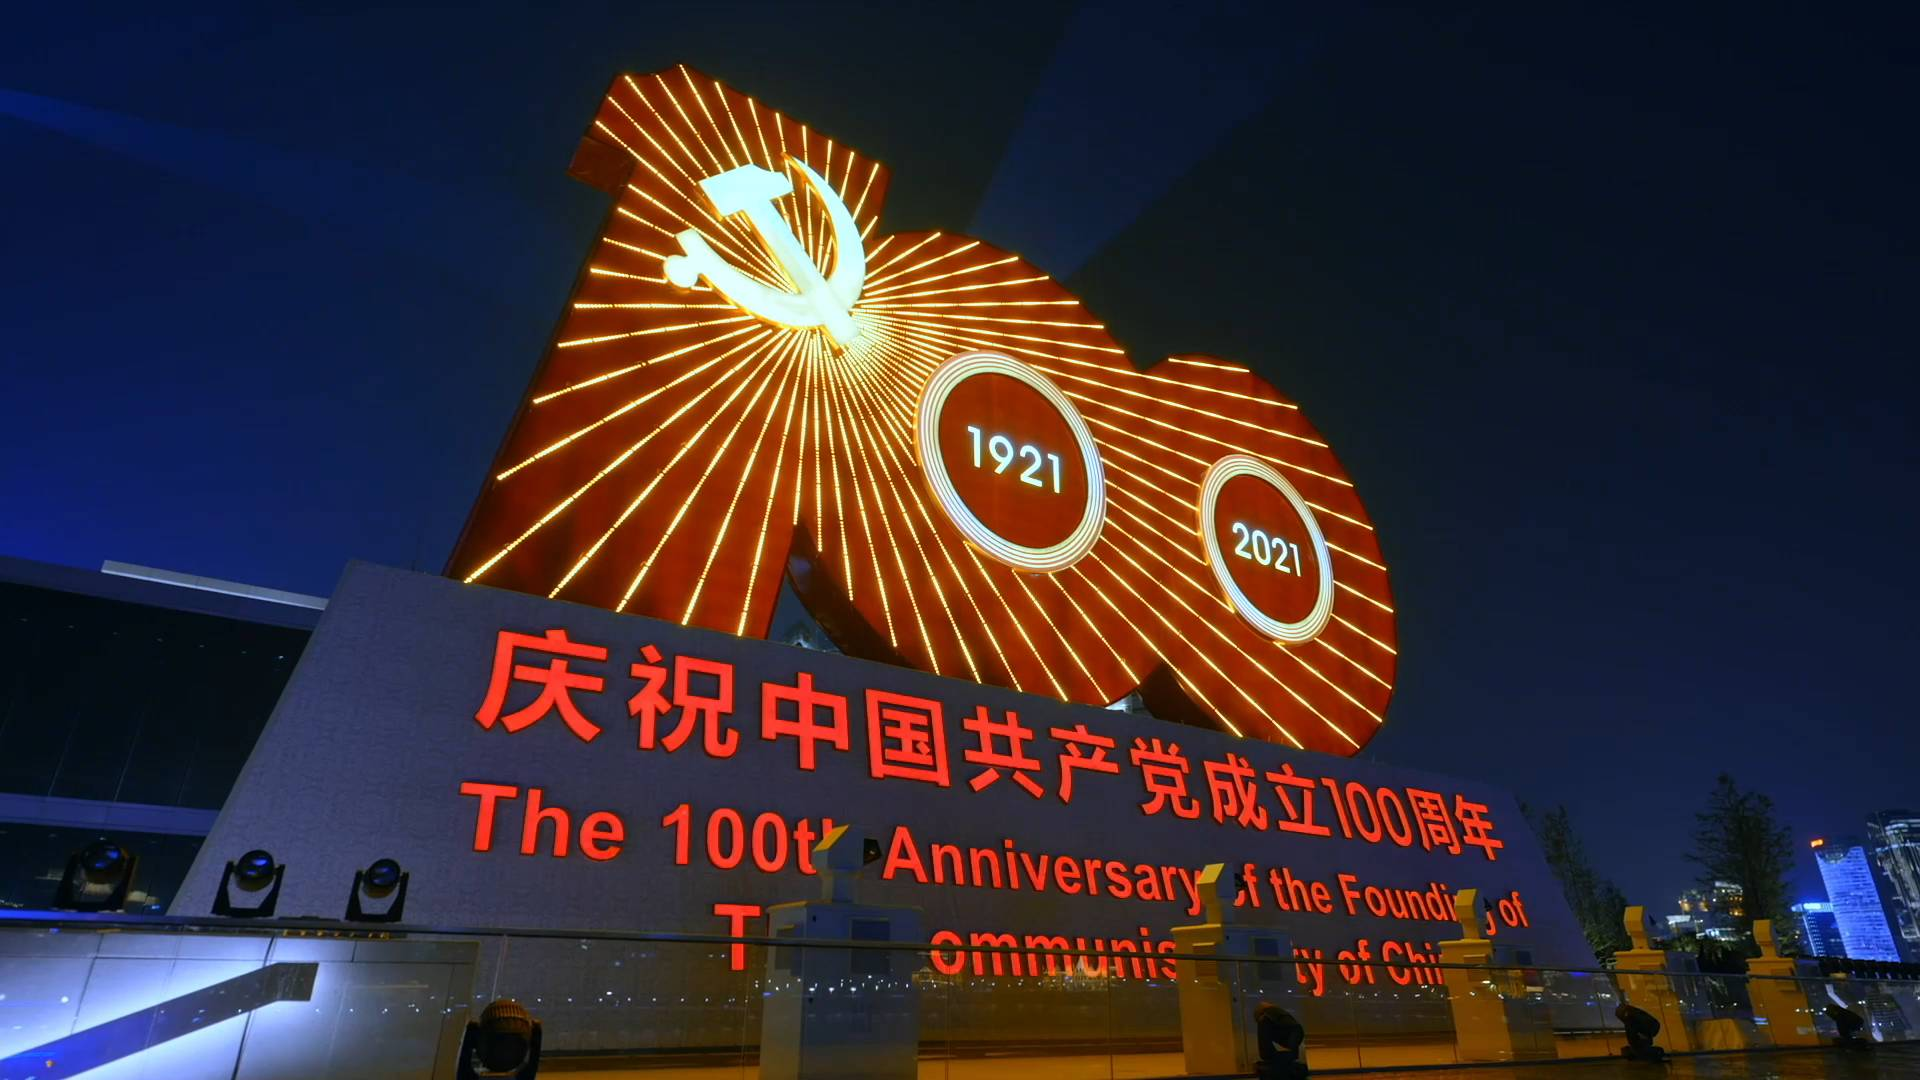 GLOBALink   Highlights of activities across China to mark CPC centenary